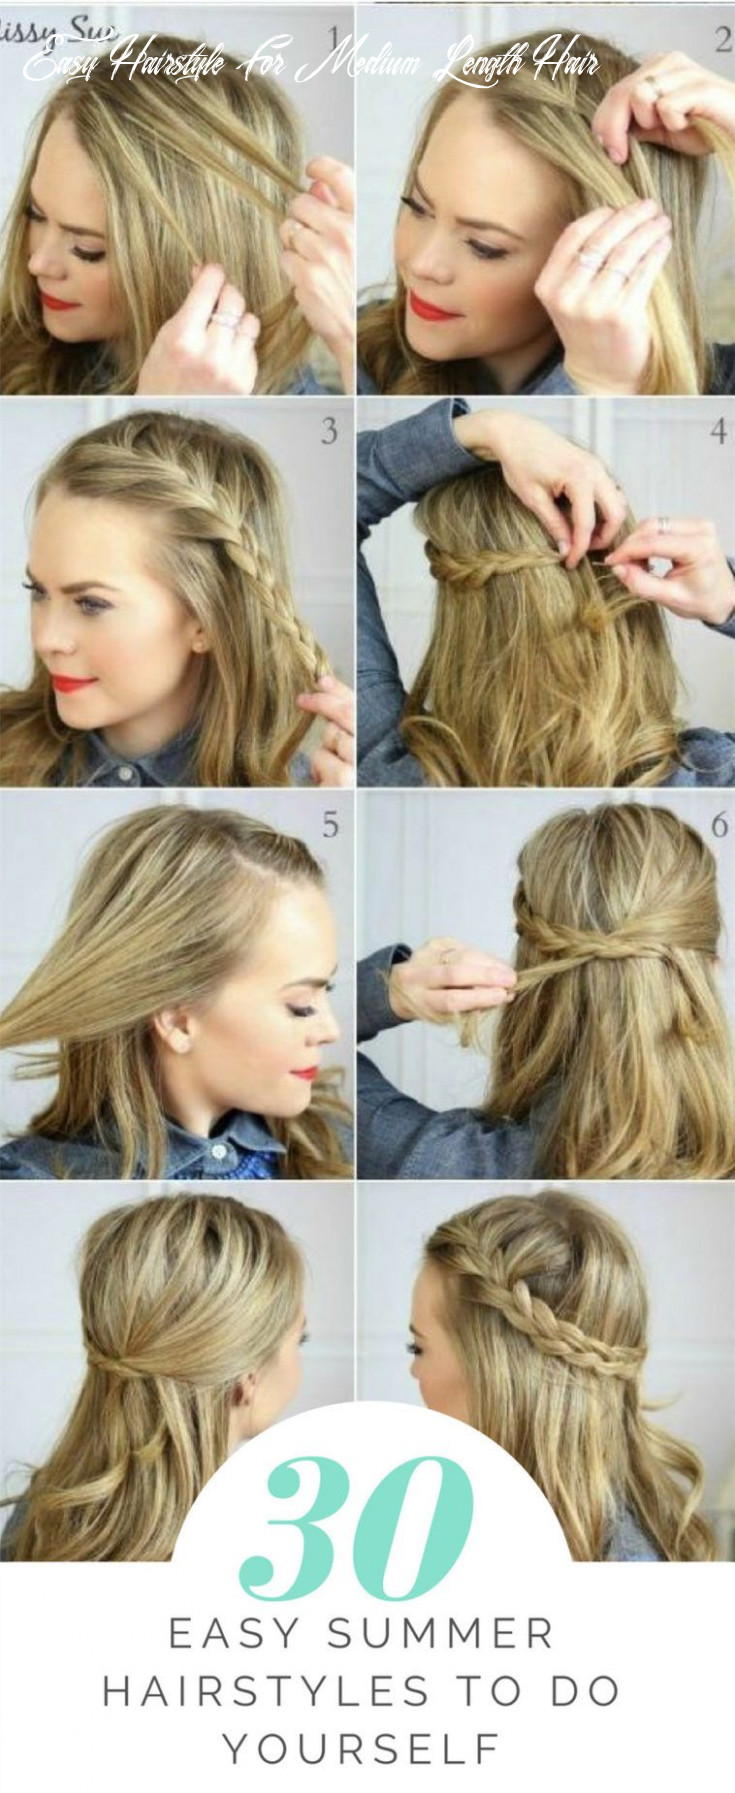 8 easy summer hairstyles to do yourself | cute everyday